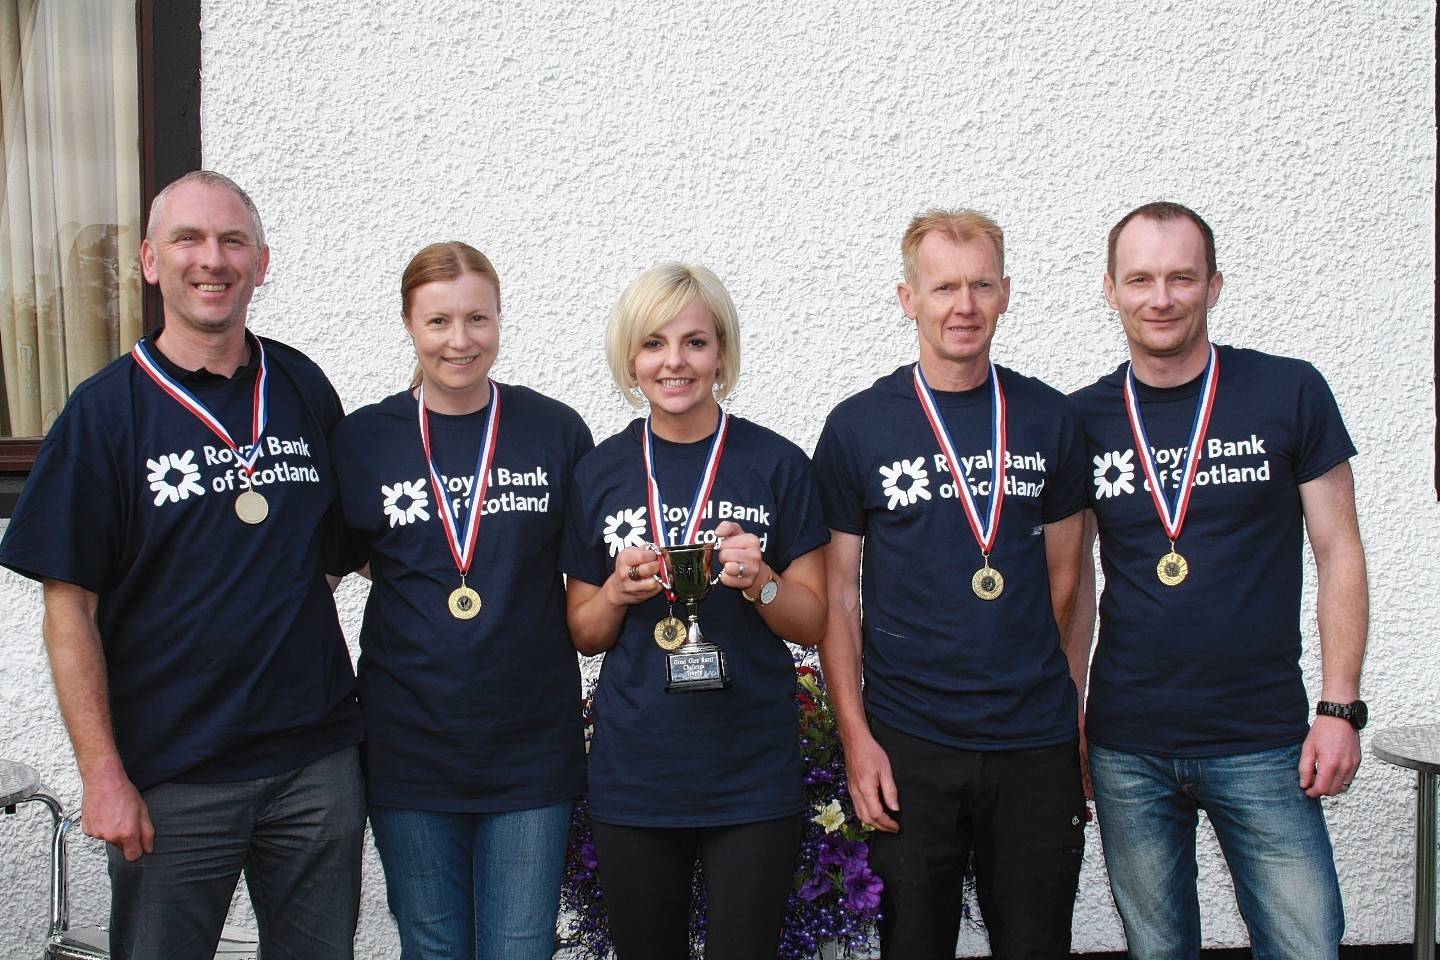 The winning team from RBS -  Brian Murphy, Mairi White, Karis Marinello, Bill Dickson and Jason Cram.